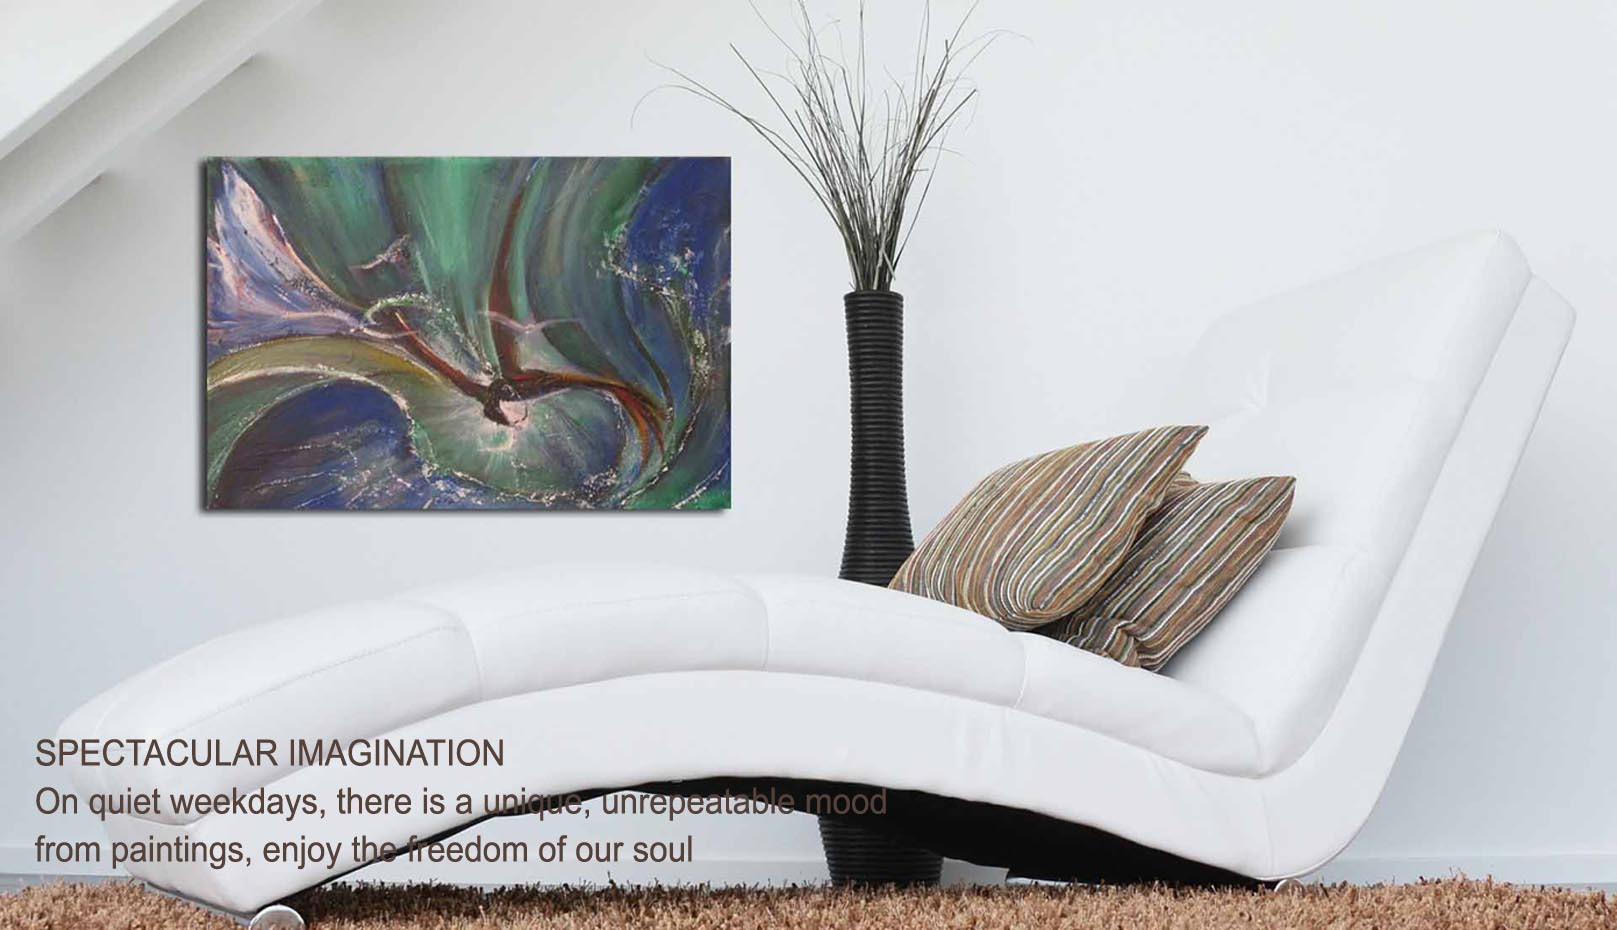 Hotel relax paintings, paintingdecoration for relaxing recreation